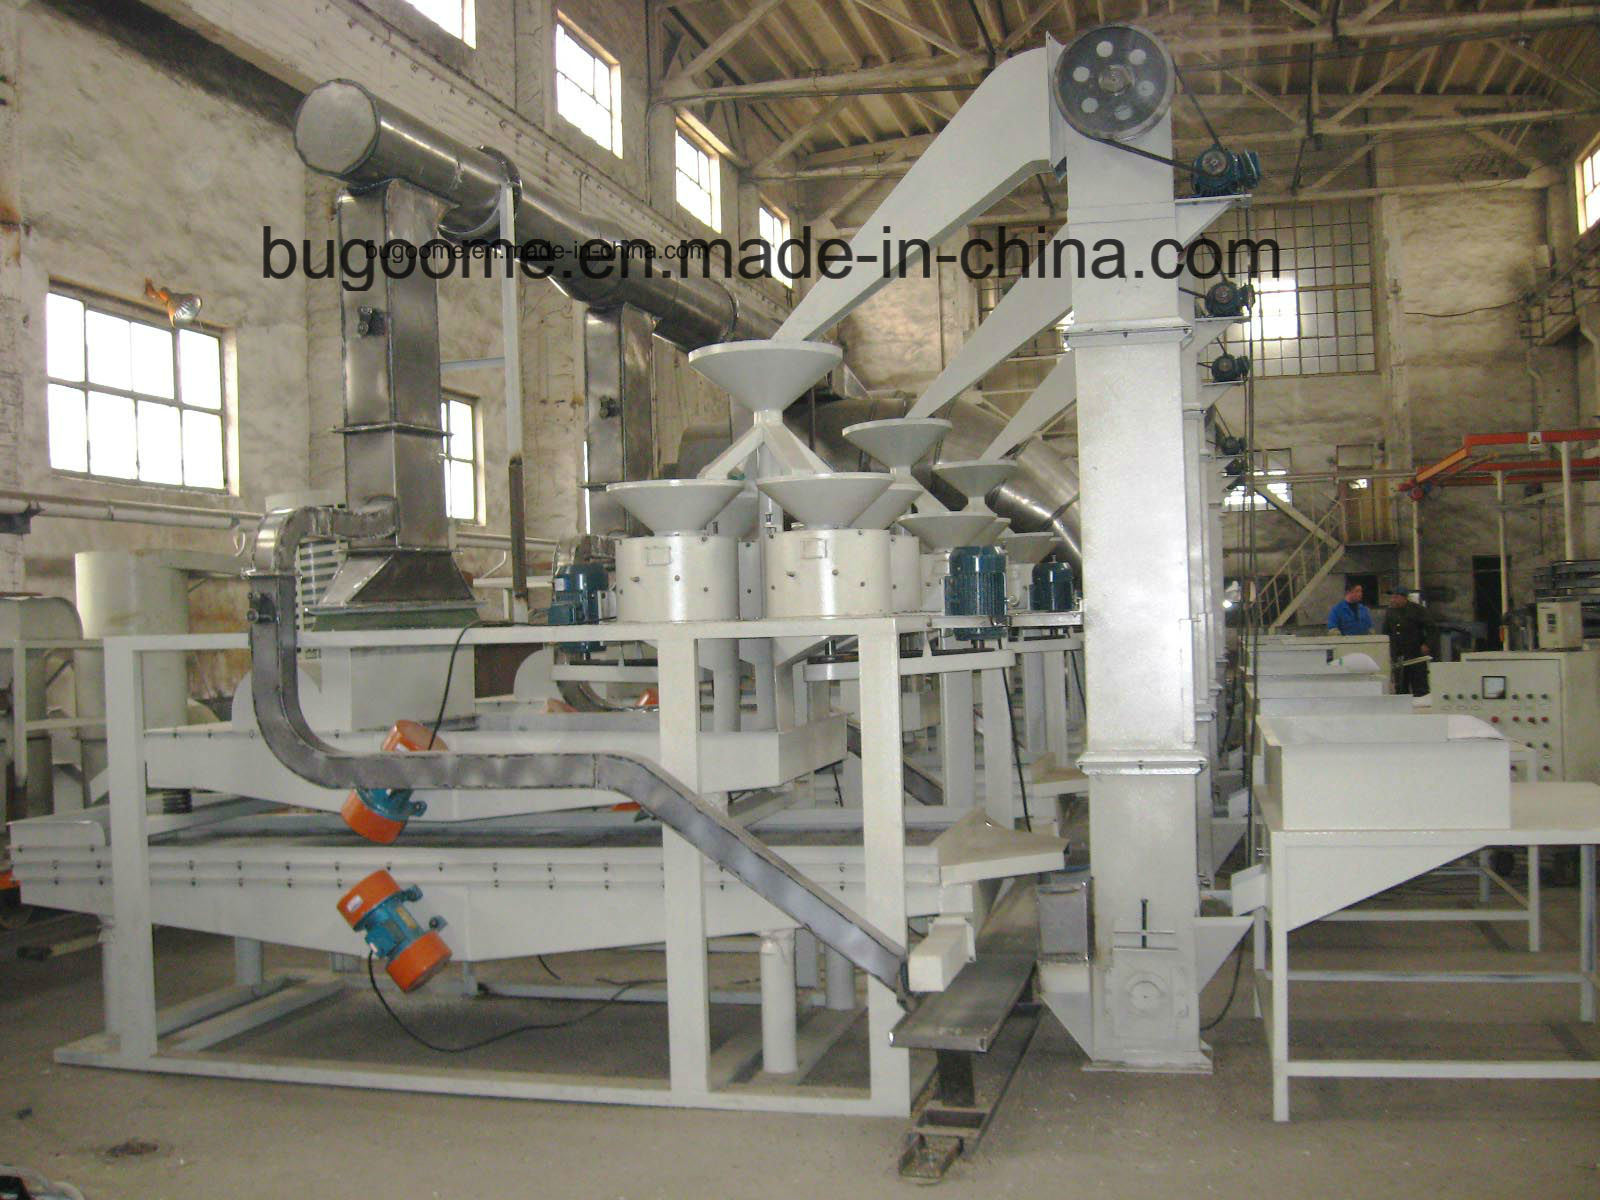 Buckwheat Shelling Machine /Buckwheat Sheller